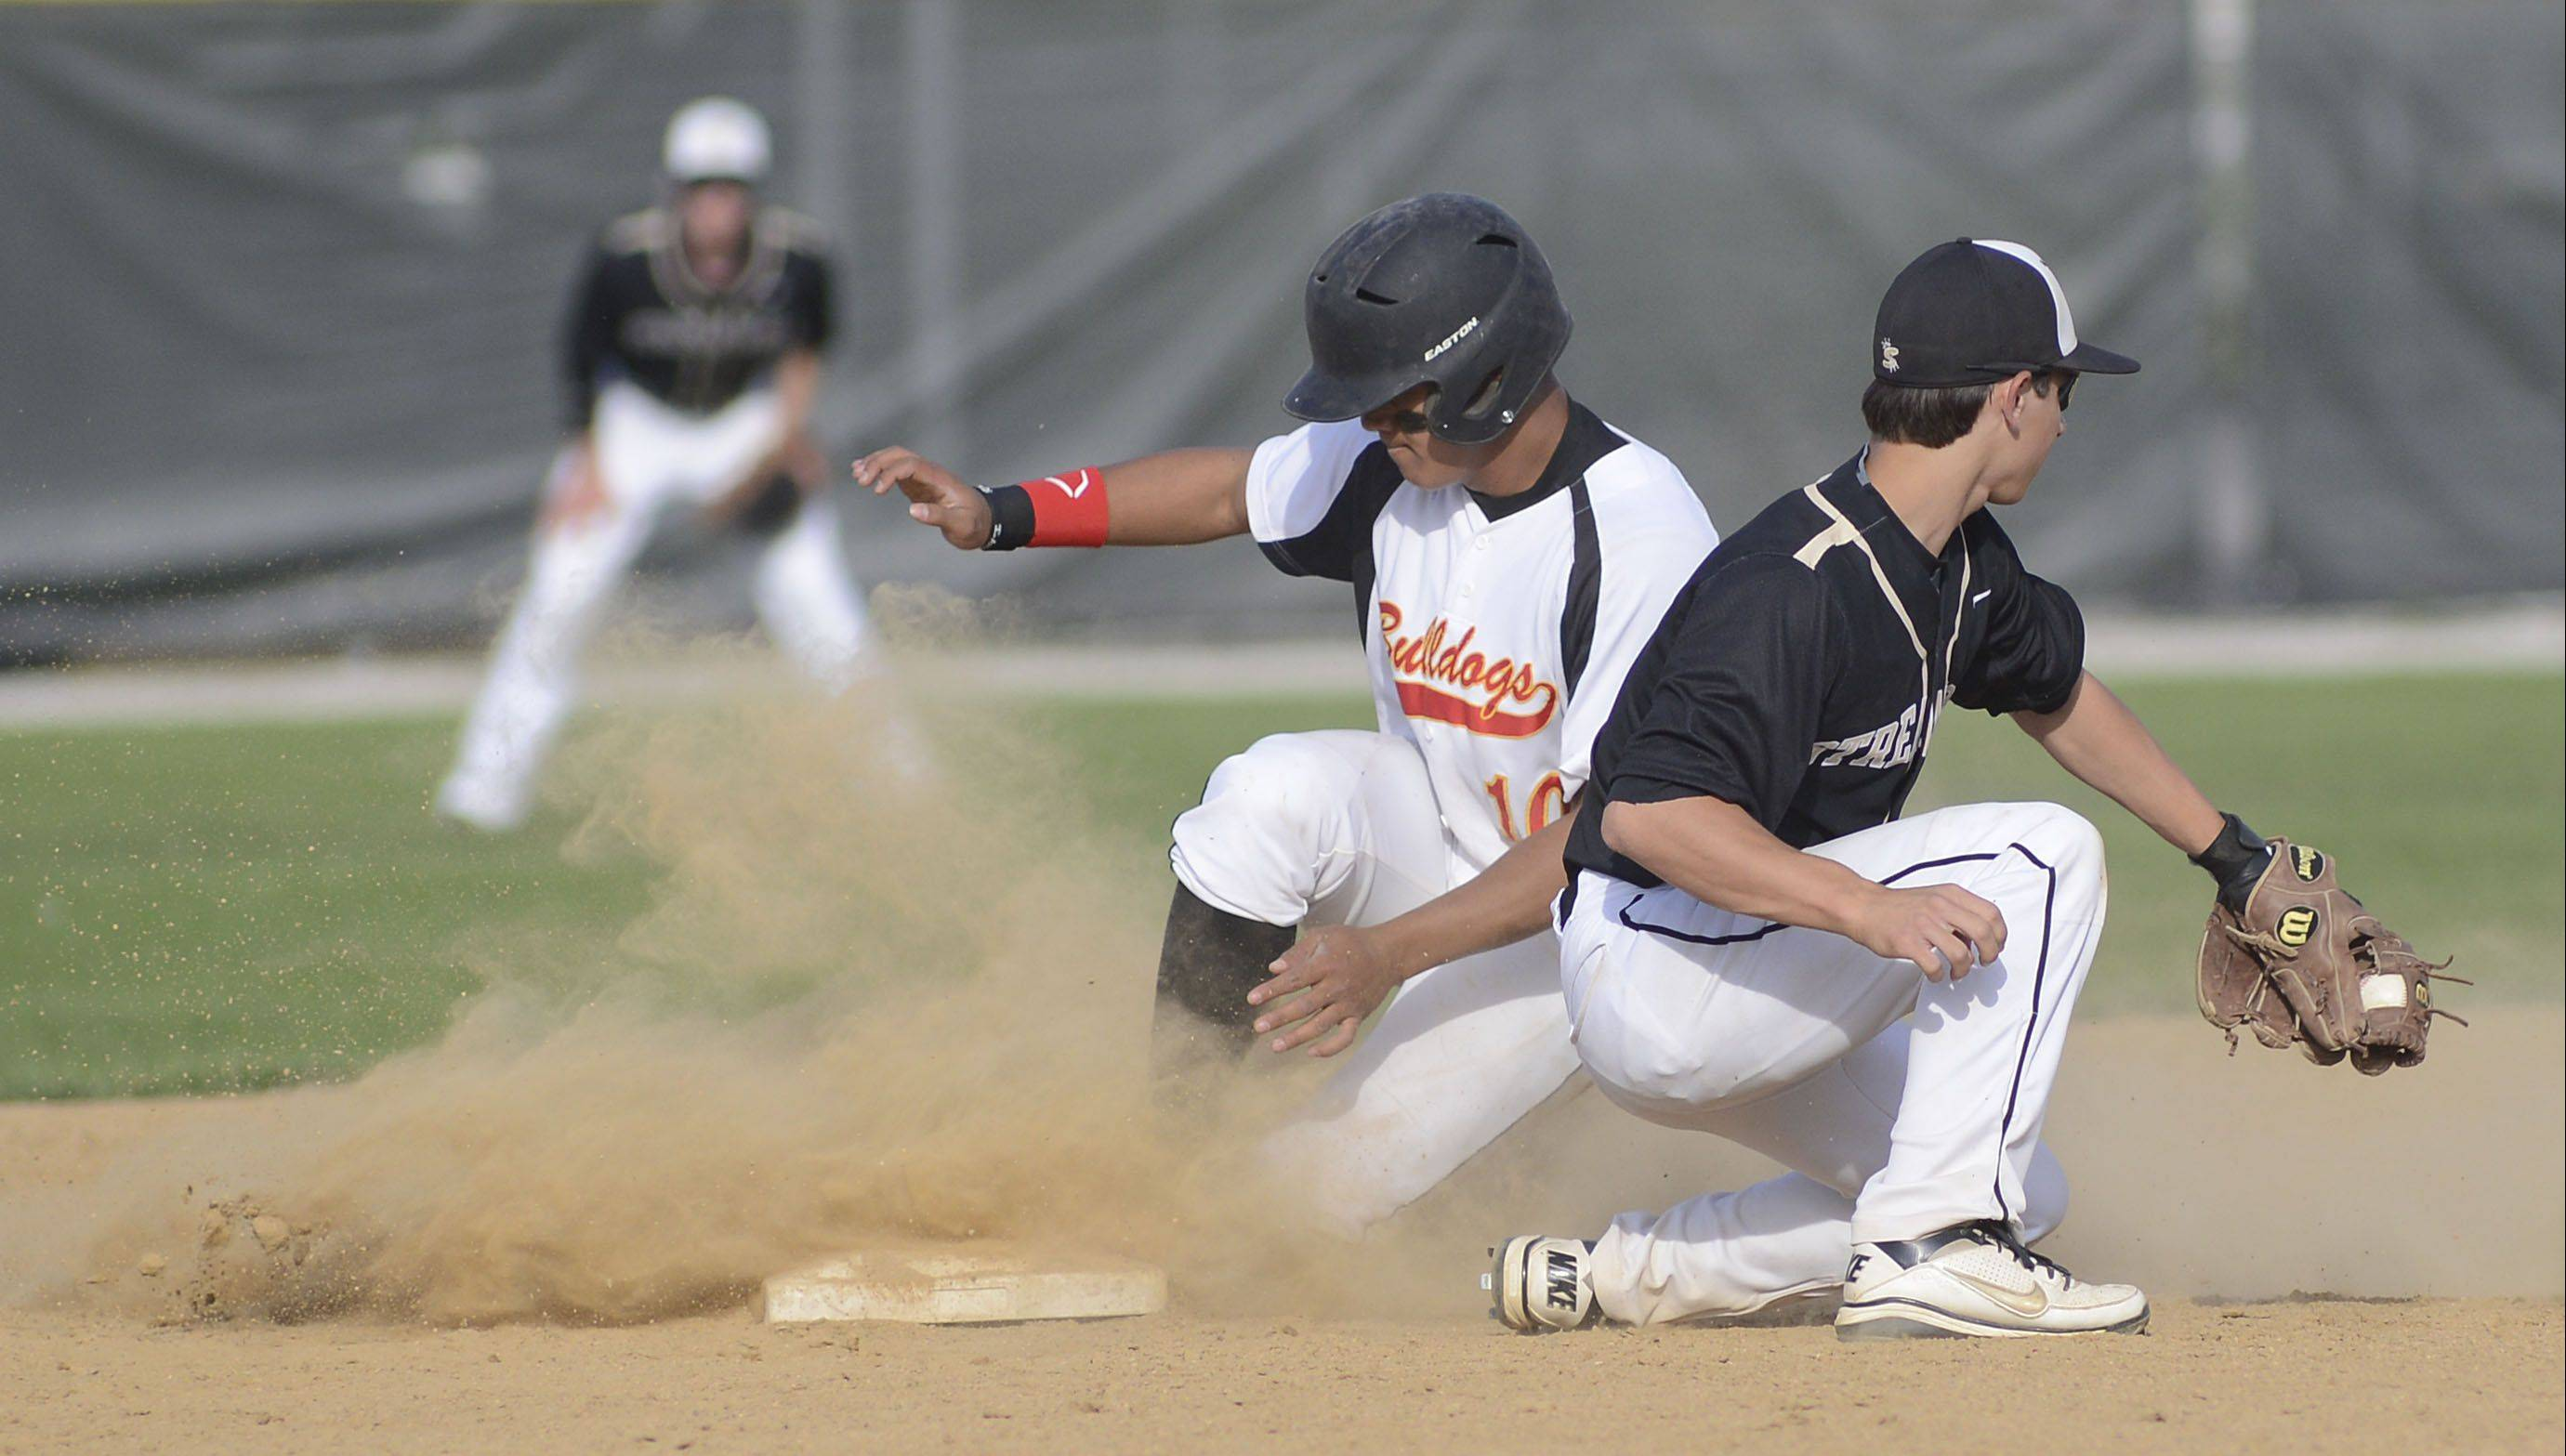 Batavia's Laren Eustace went 4-for-4 Wednesday with 2 RBI, 2 runs and earned the save.